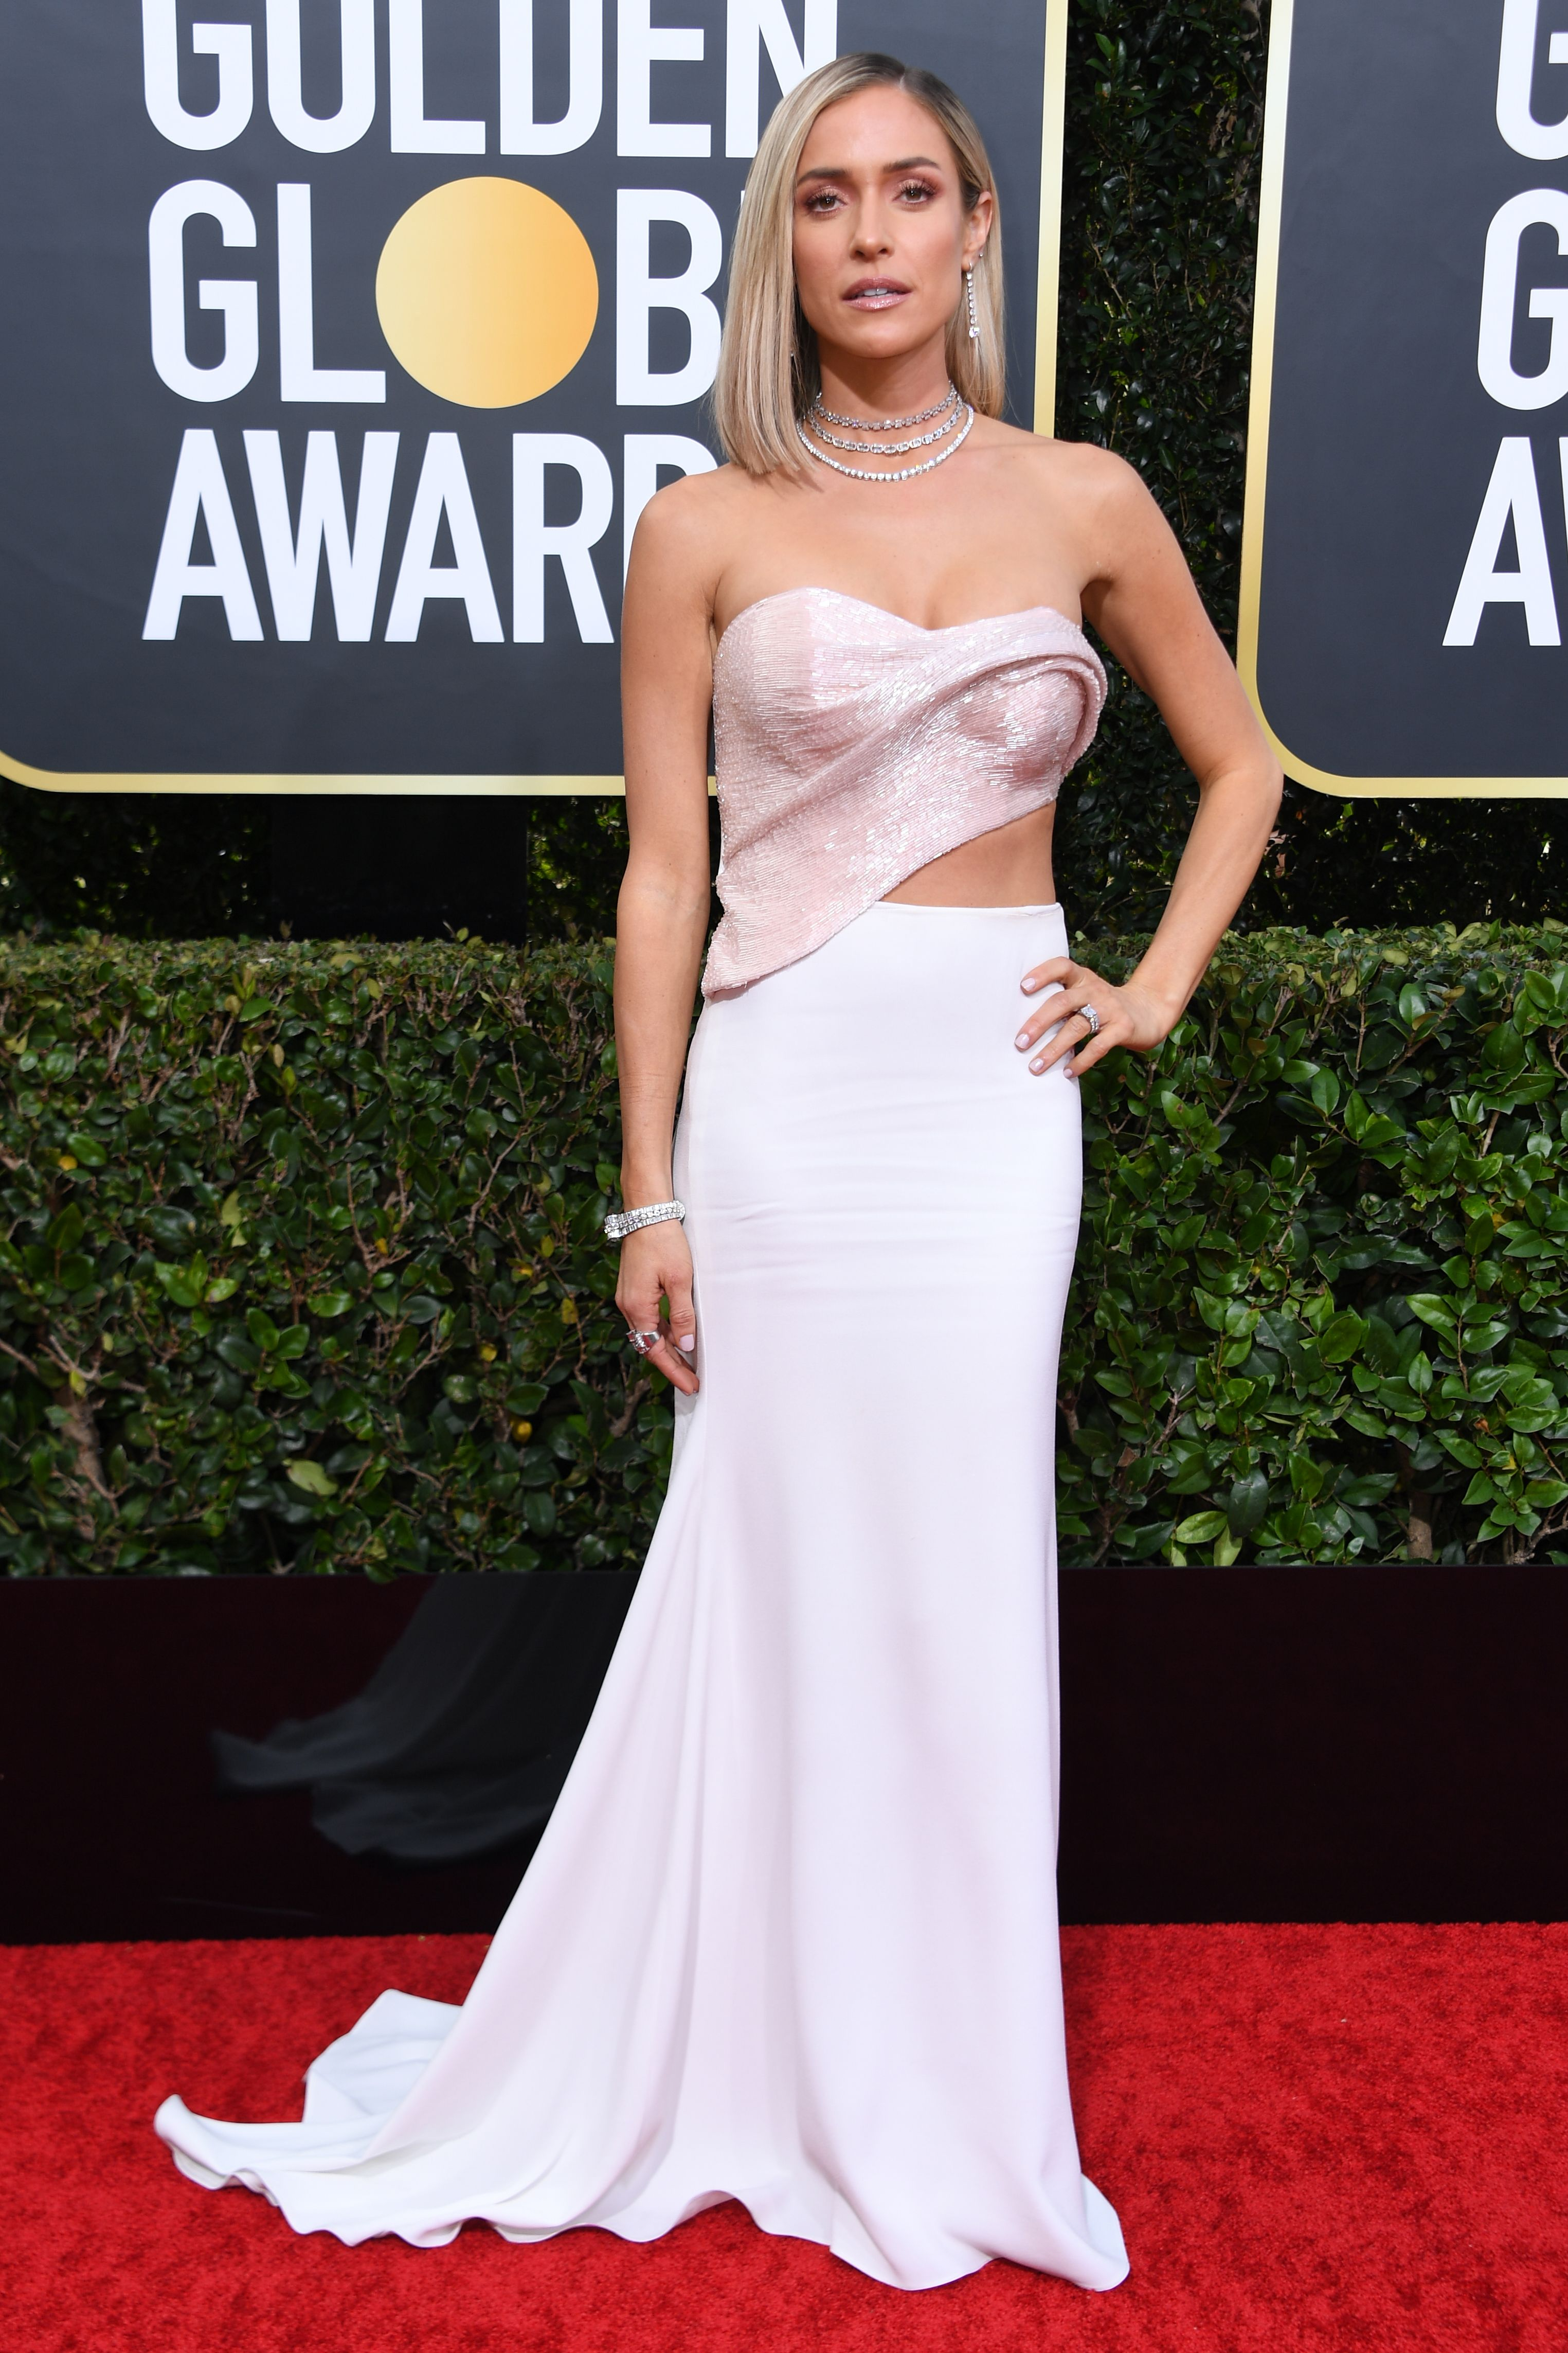 US television personality Kristin Cavallari arrives for the 77th annual Golden Globe Awards on January 5, 2020, at The Beverly Hilton hotel in Beverly Hills, California. (Photo by VALERIE MACON / AFP) (Photo by VALERIE MACON/AFP via Getty Images)